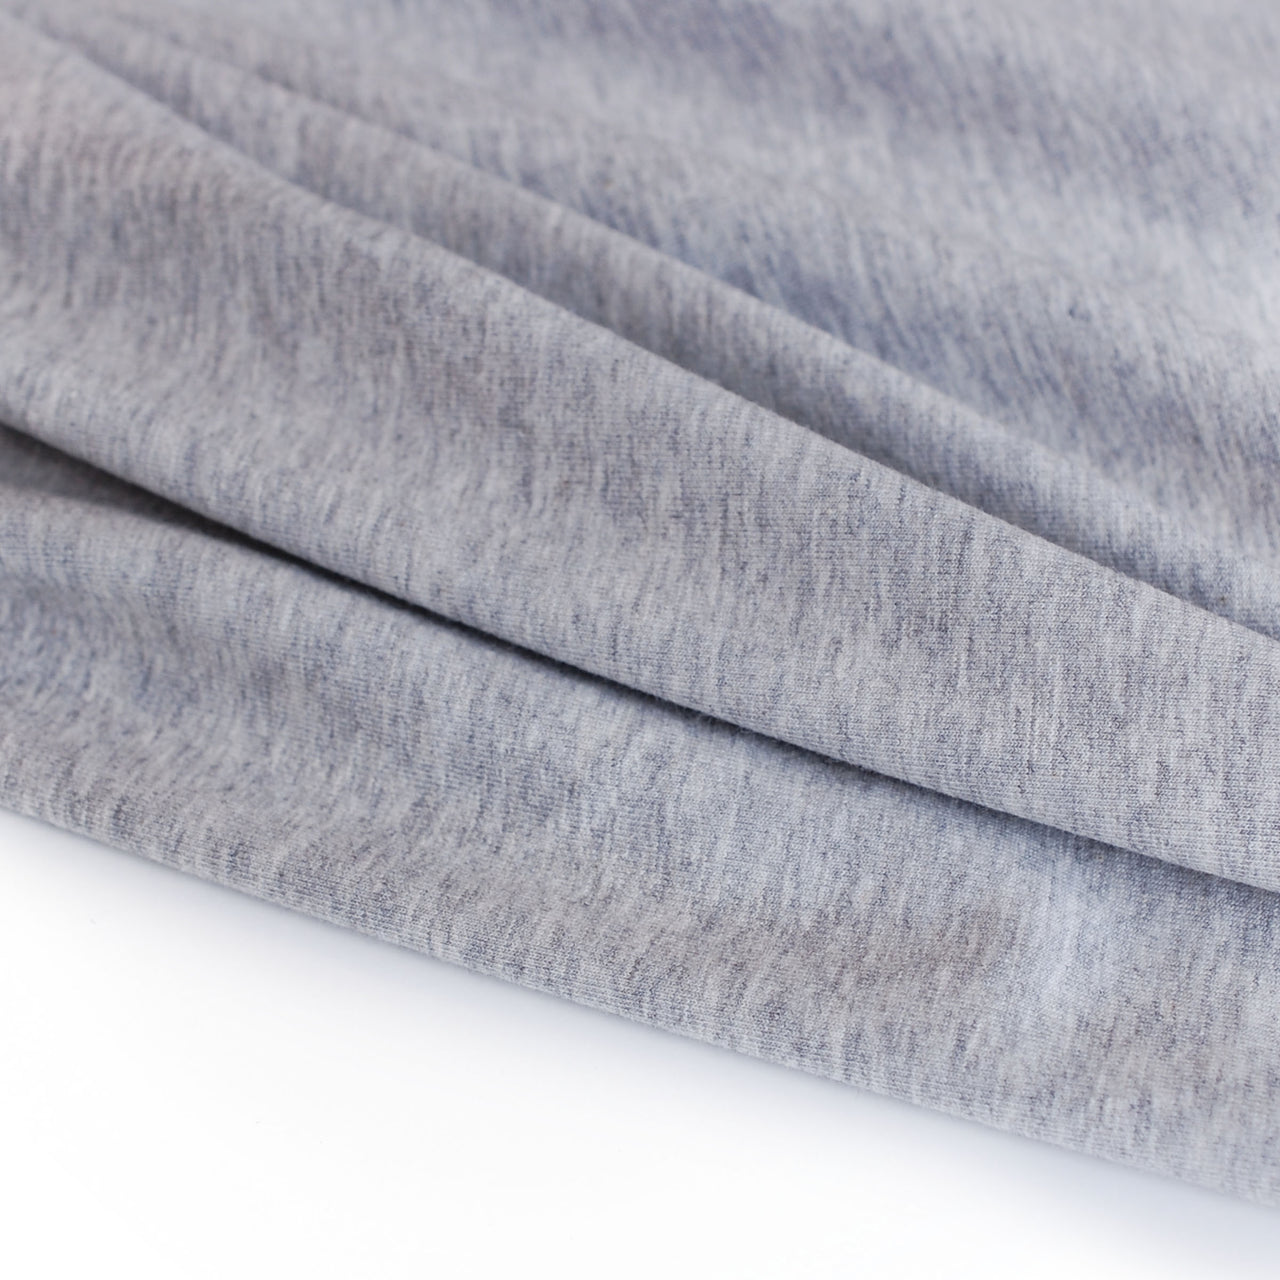 1/2M Organic Cotton Jersey in Medium Grey